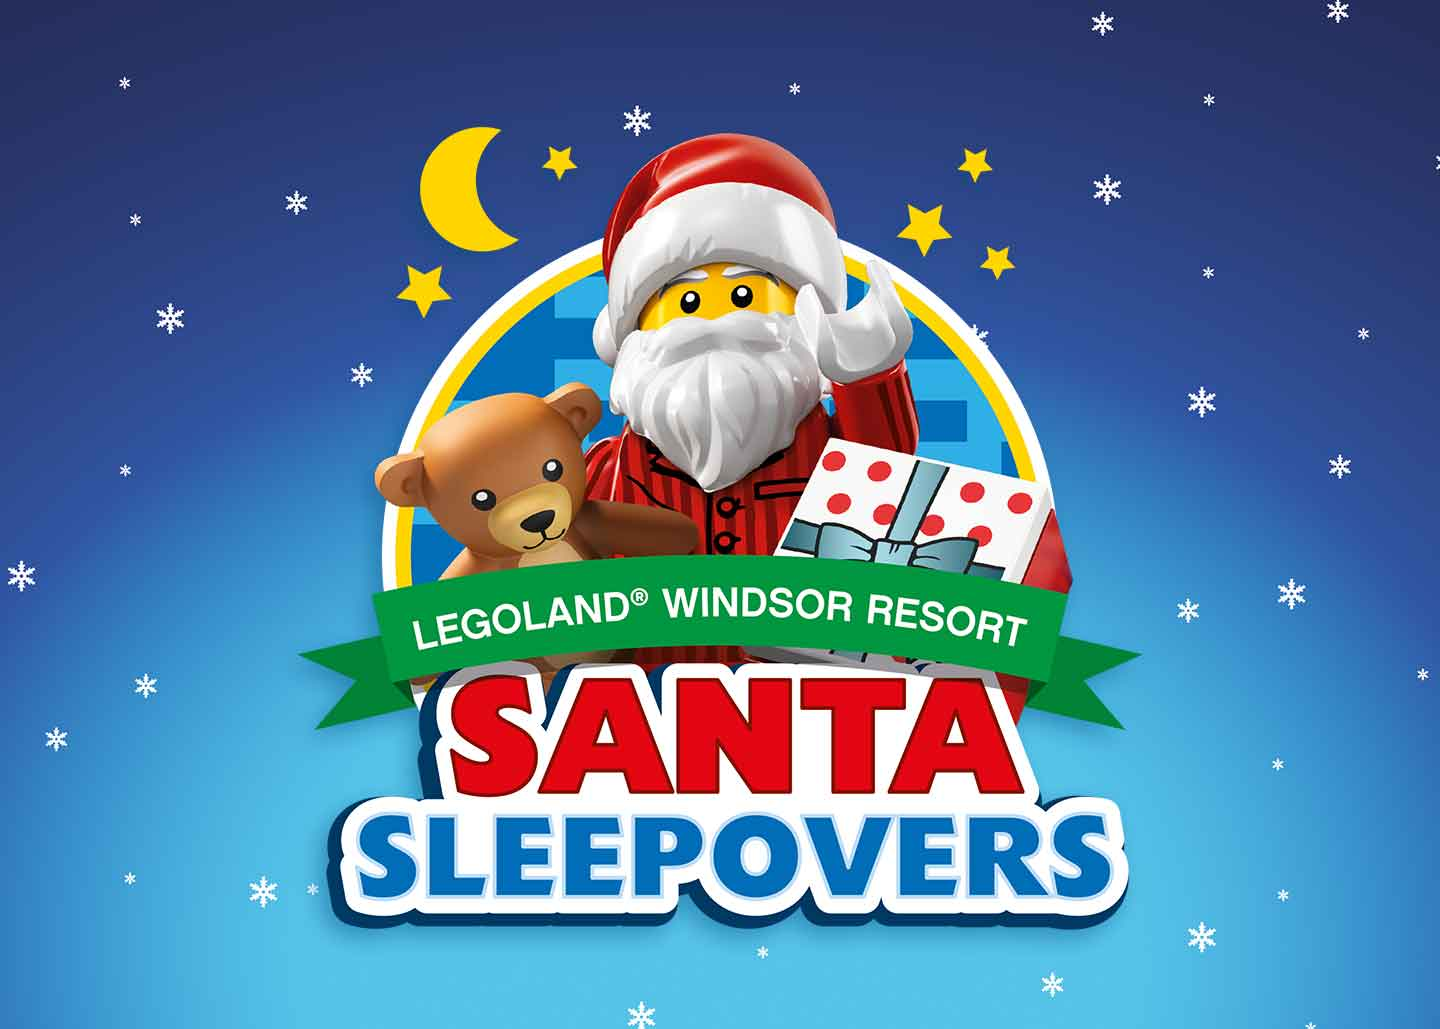 Last chance to book your discounted Santa sleepover